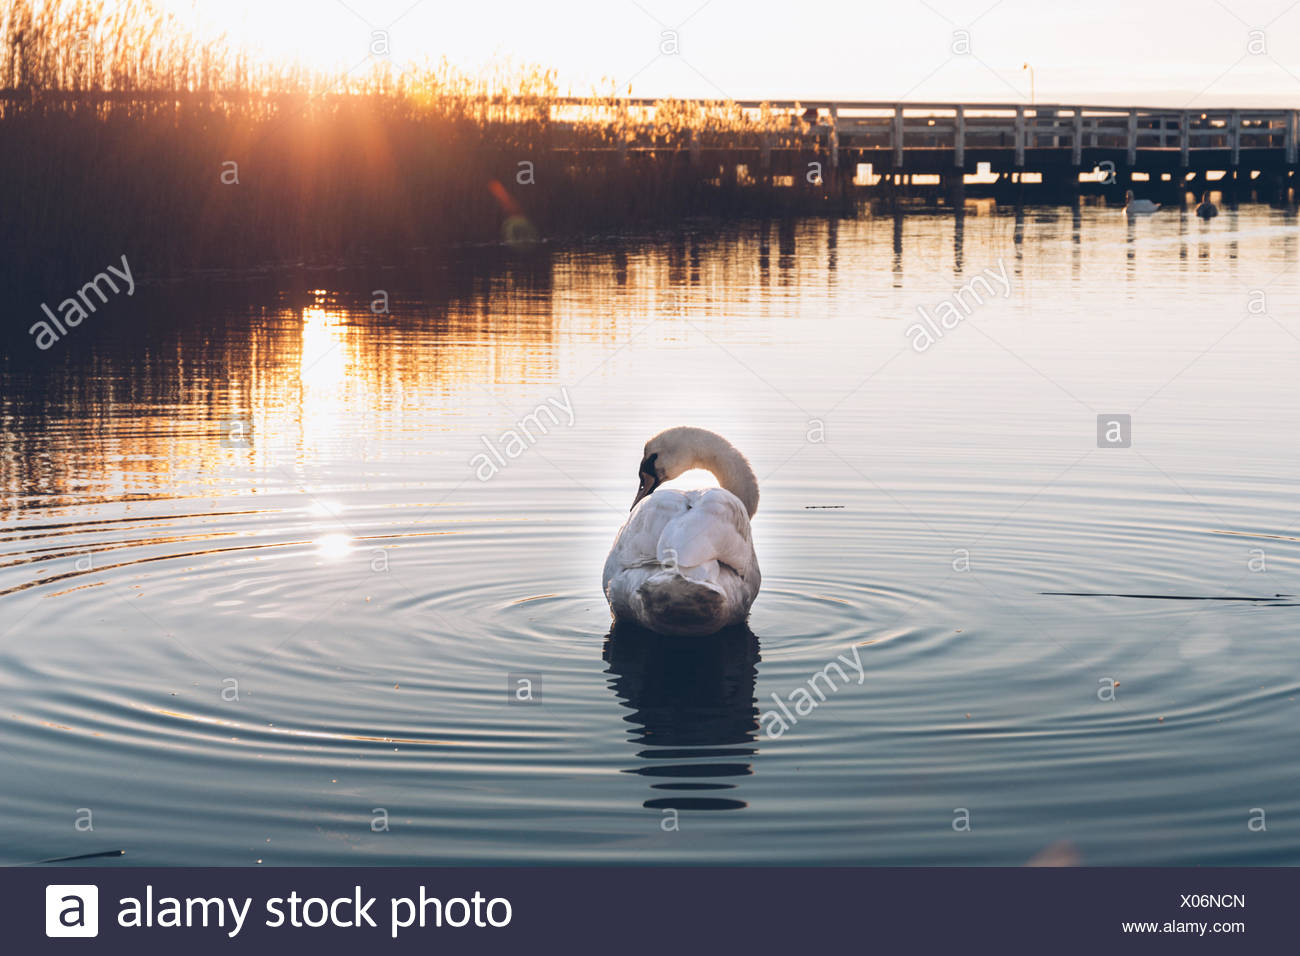 Rear View Of Swan In River - Stock Image